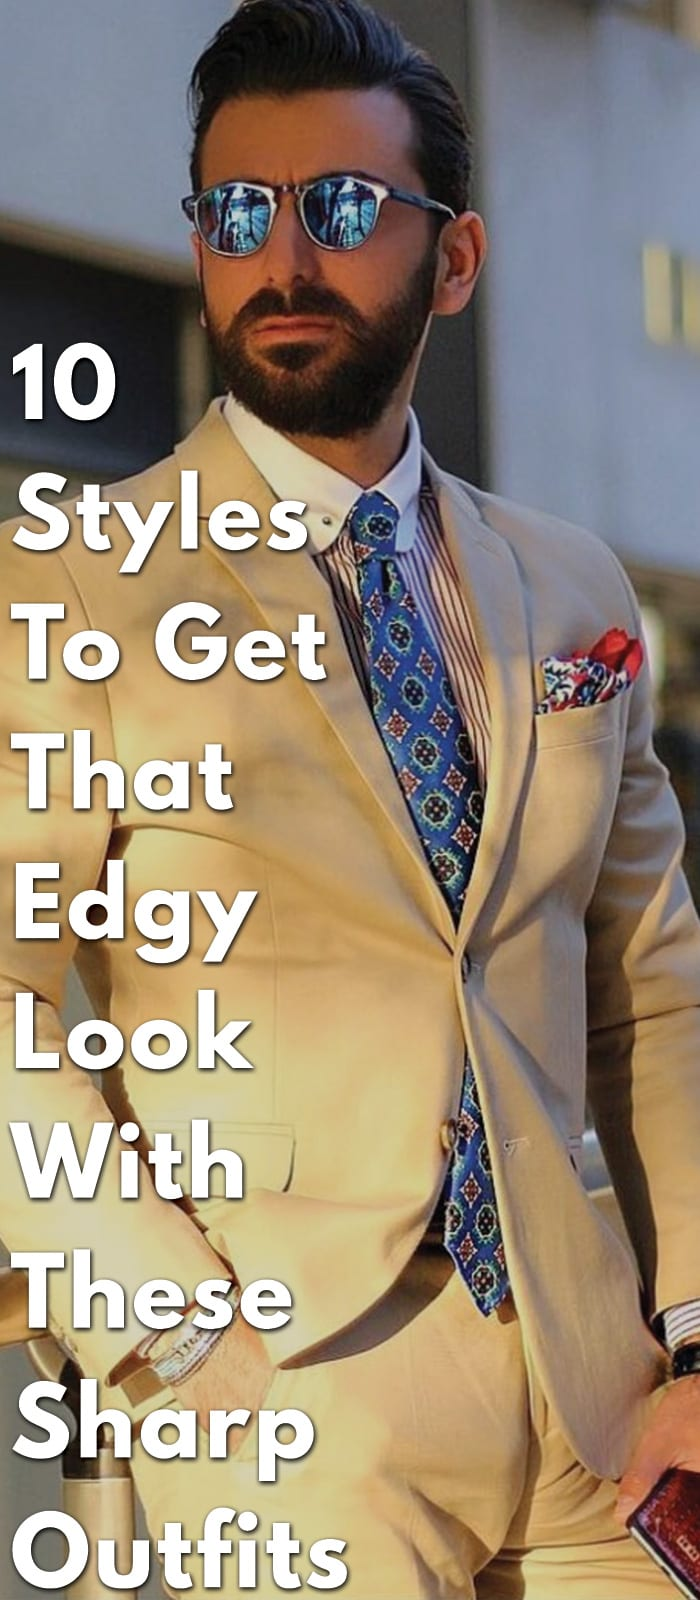 10-Styles-To-Get-That-Edgy-Look-With-These-Sharp-Outfits